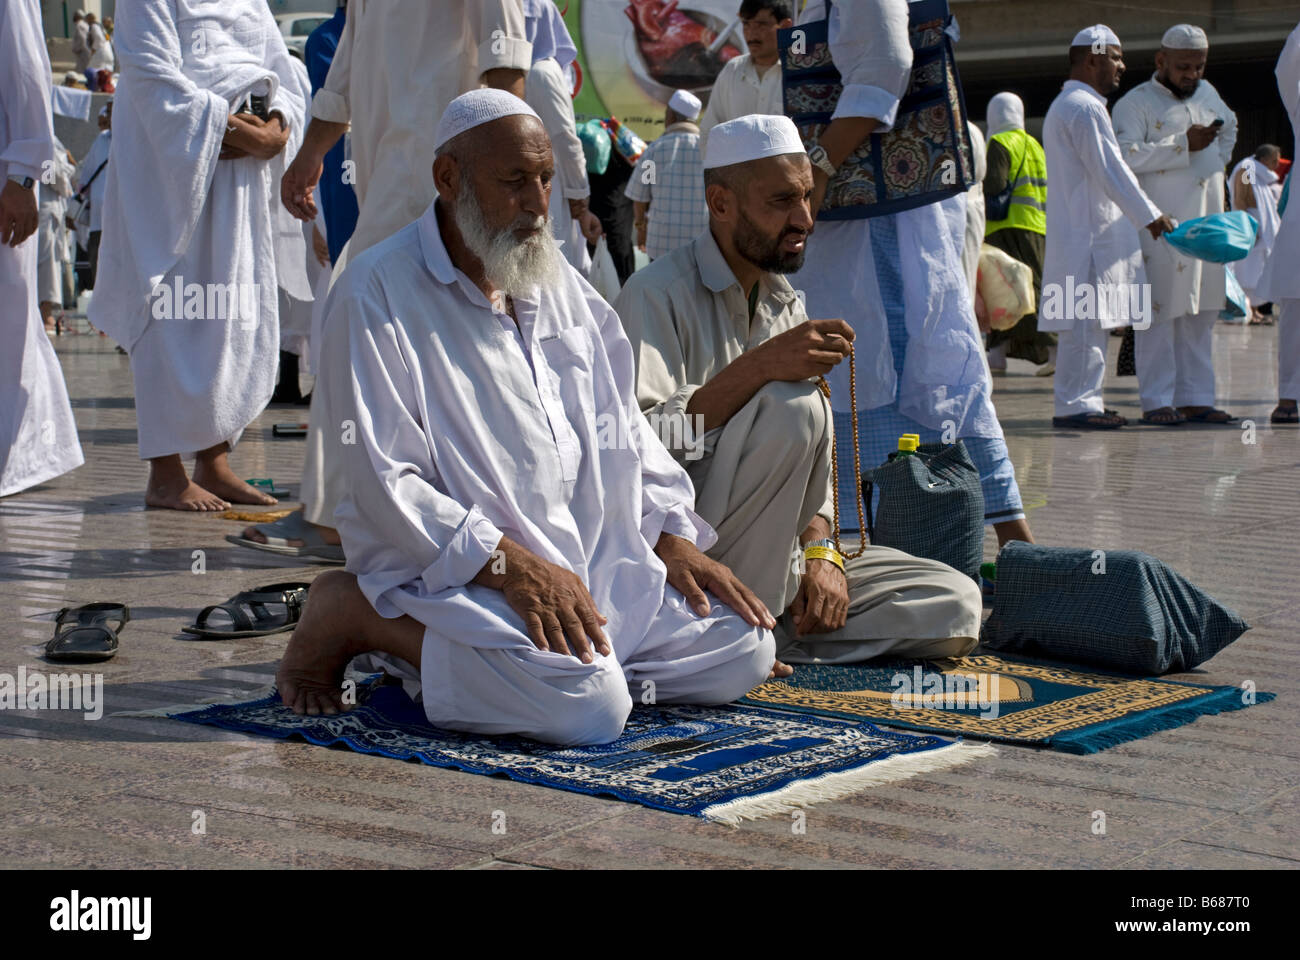 An Old And A Young Muslim Man Sitting On Their Prayer Rugs